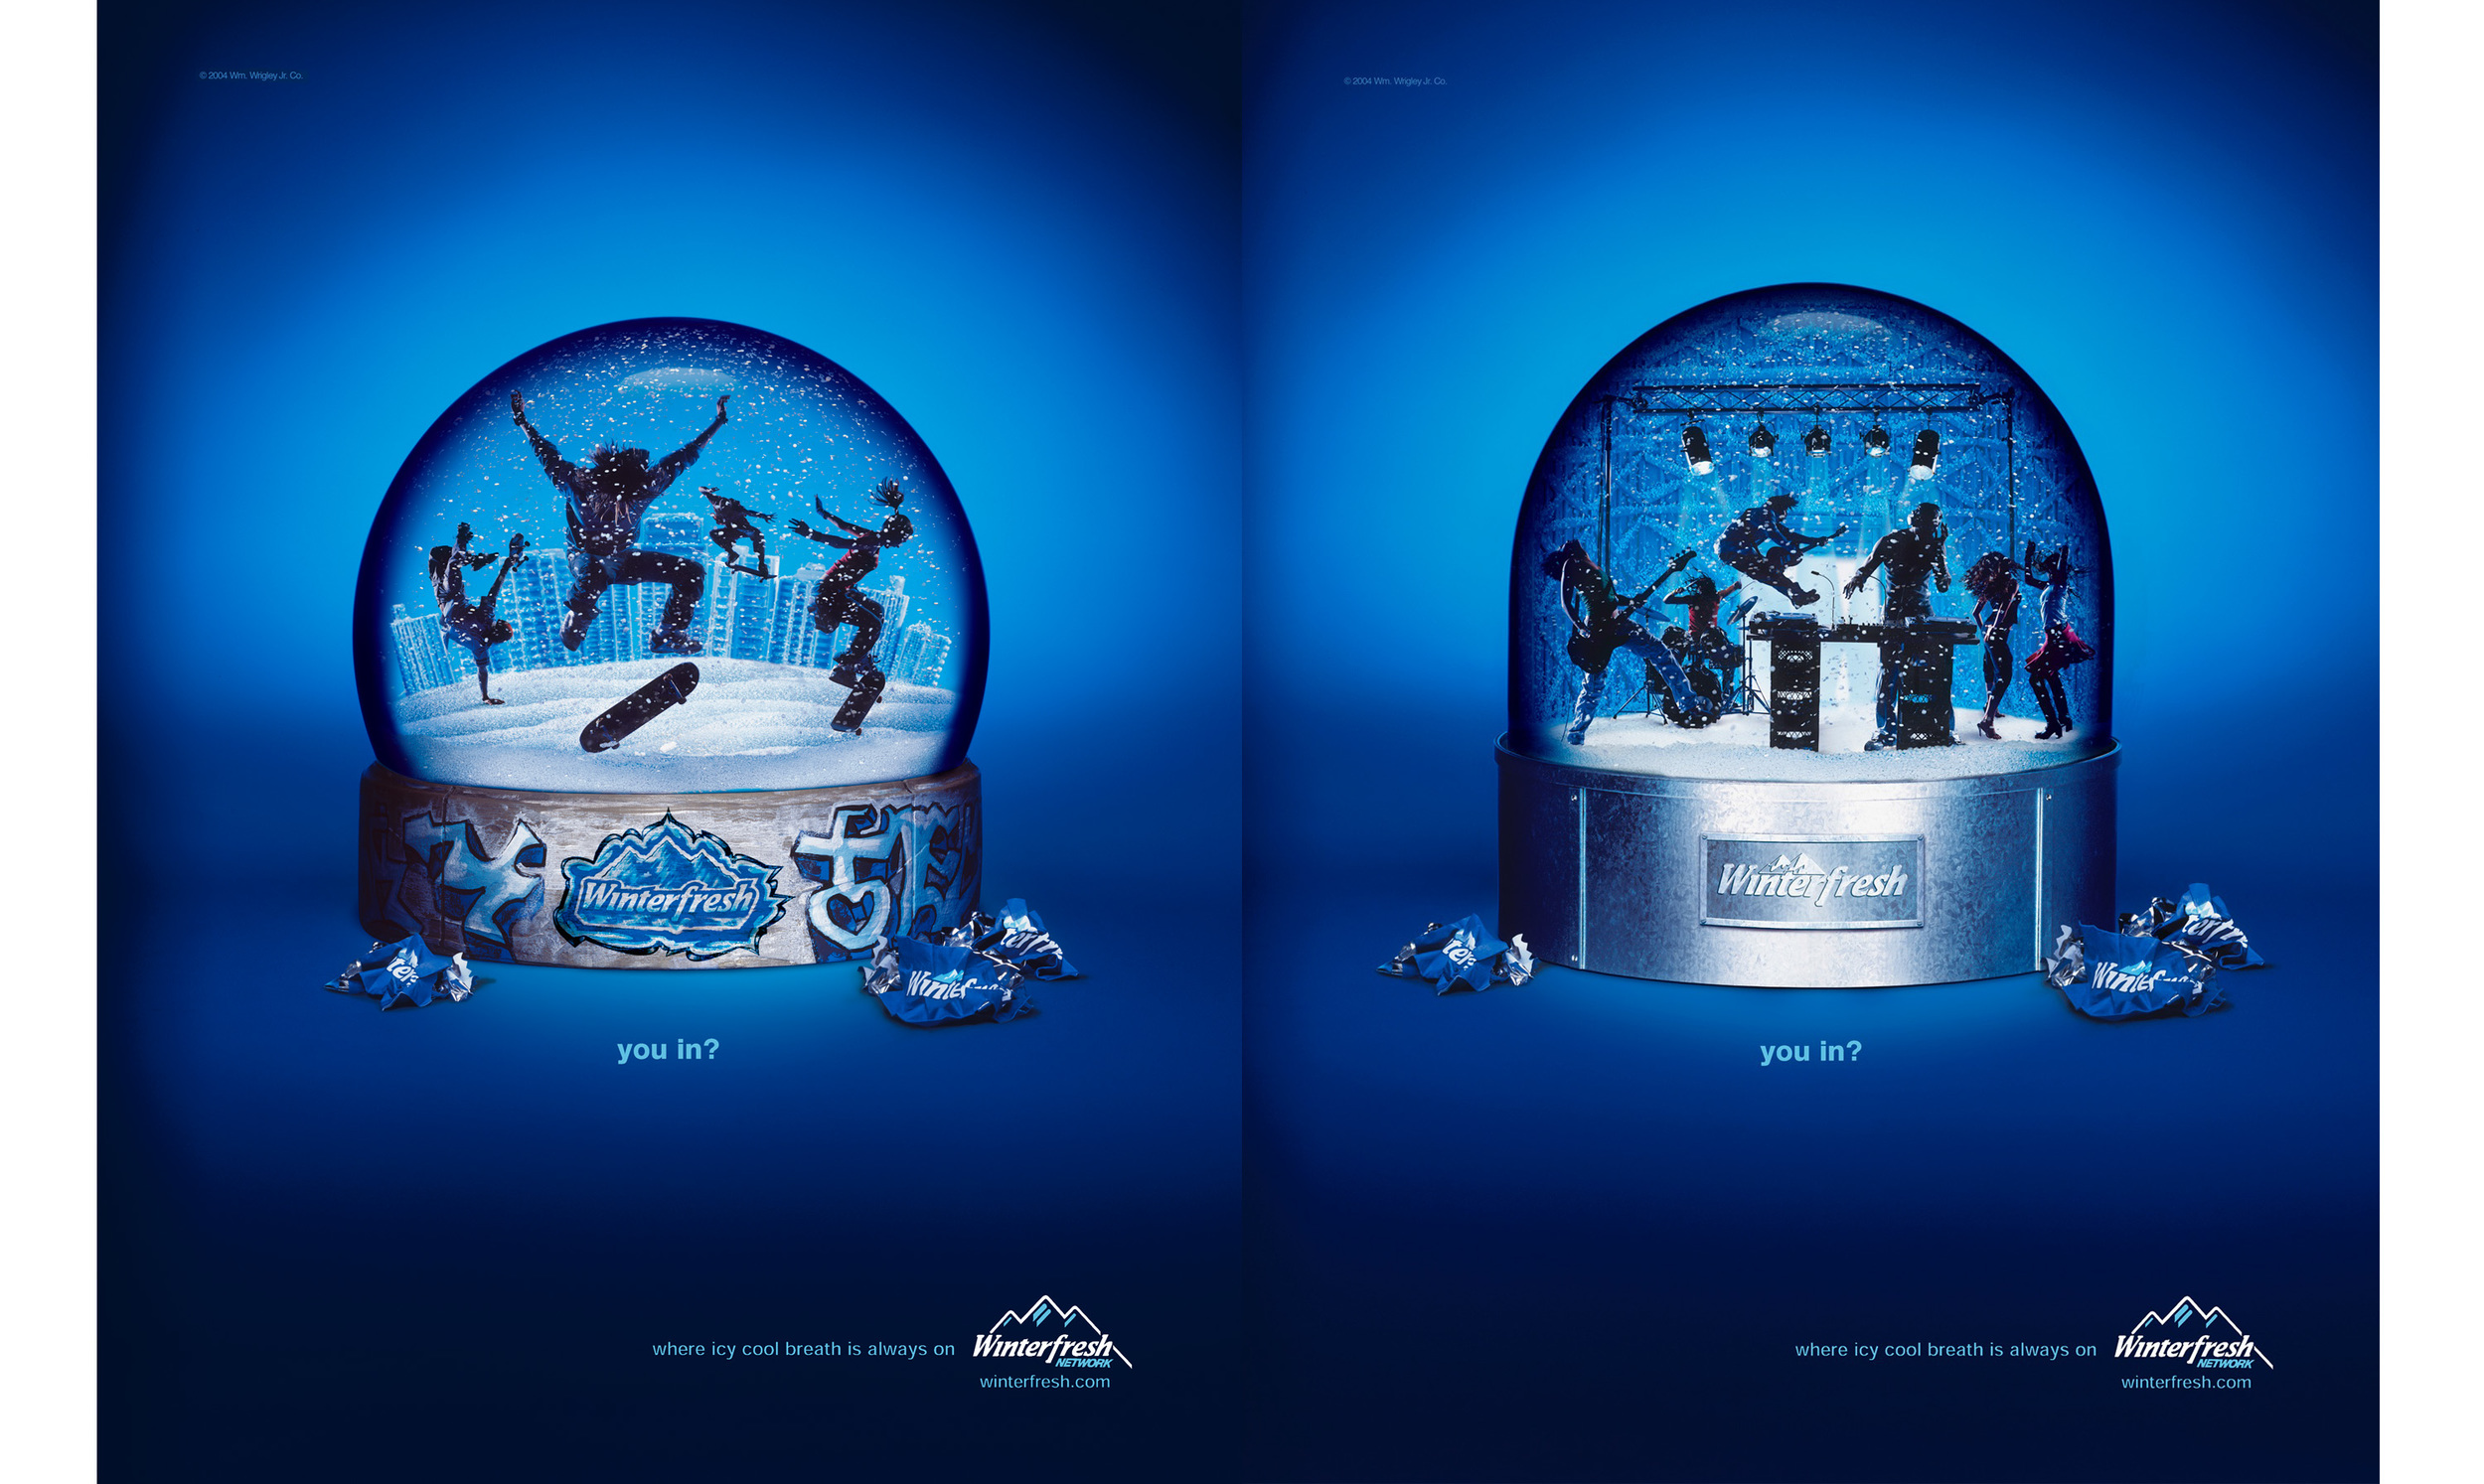 Winterfresh; Leo Burnett Worldwide